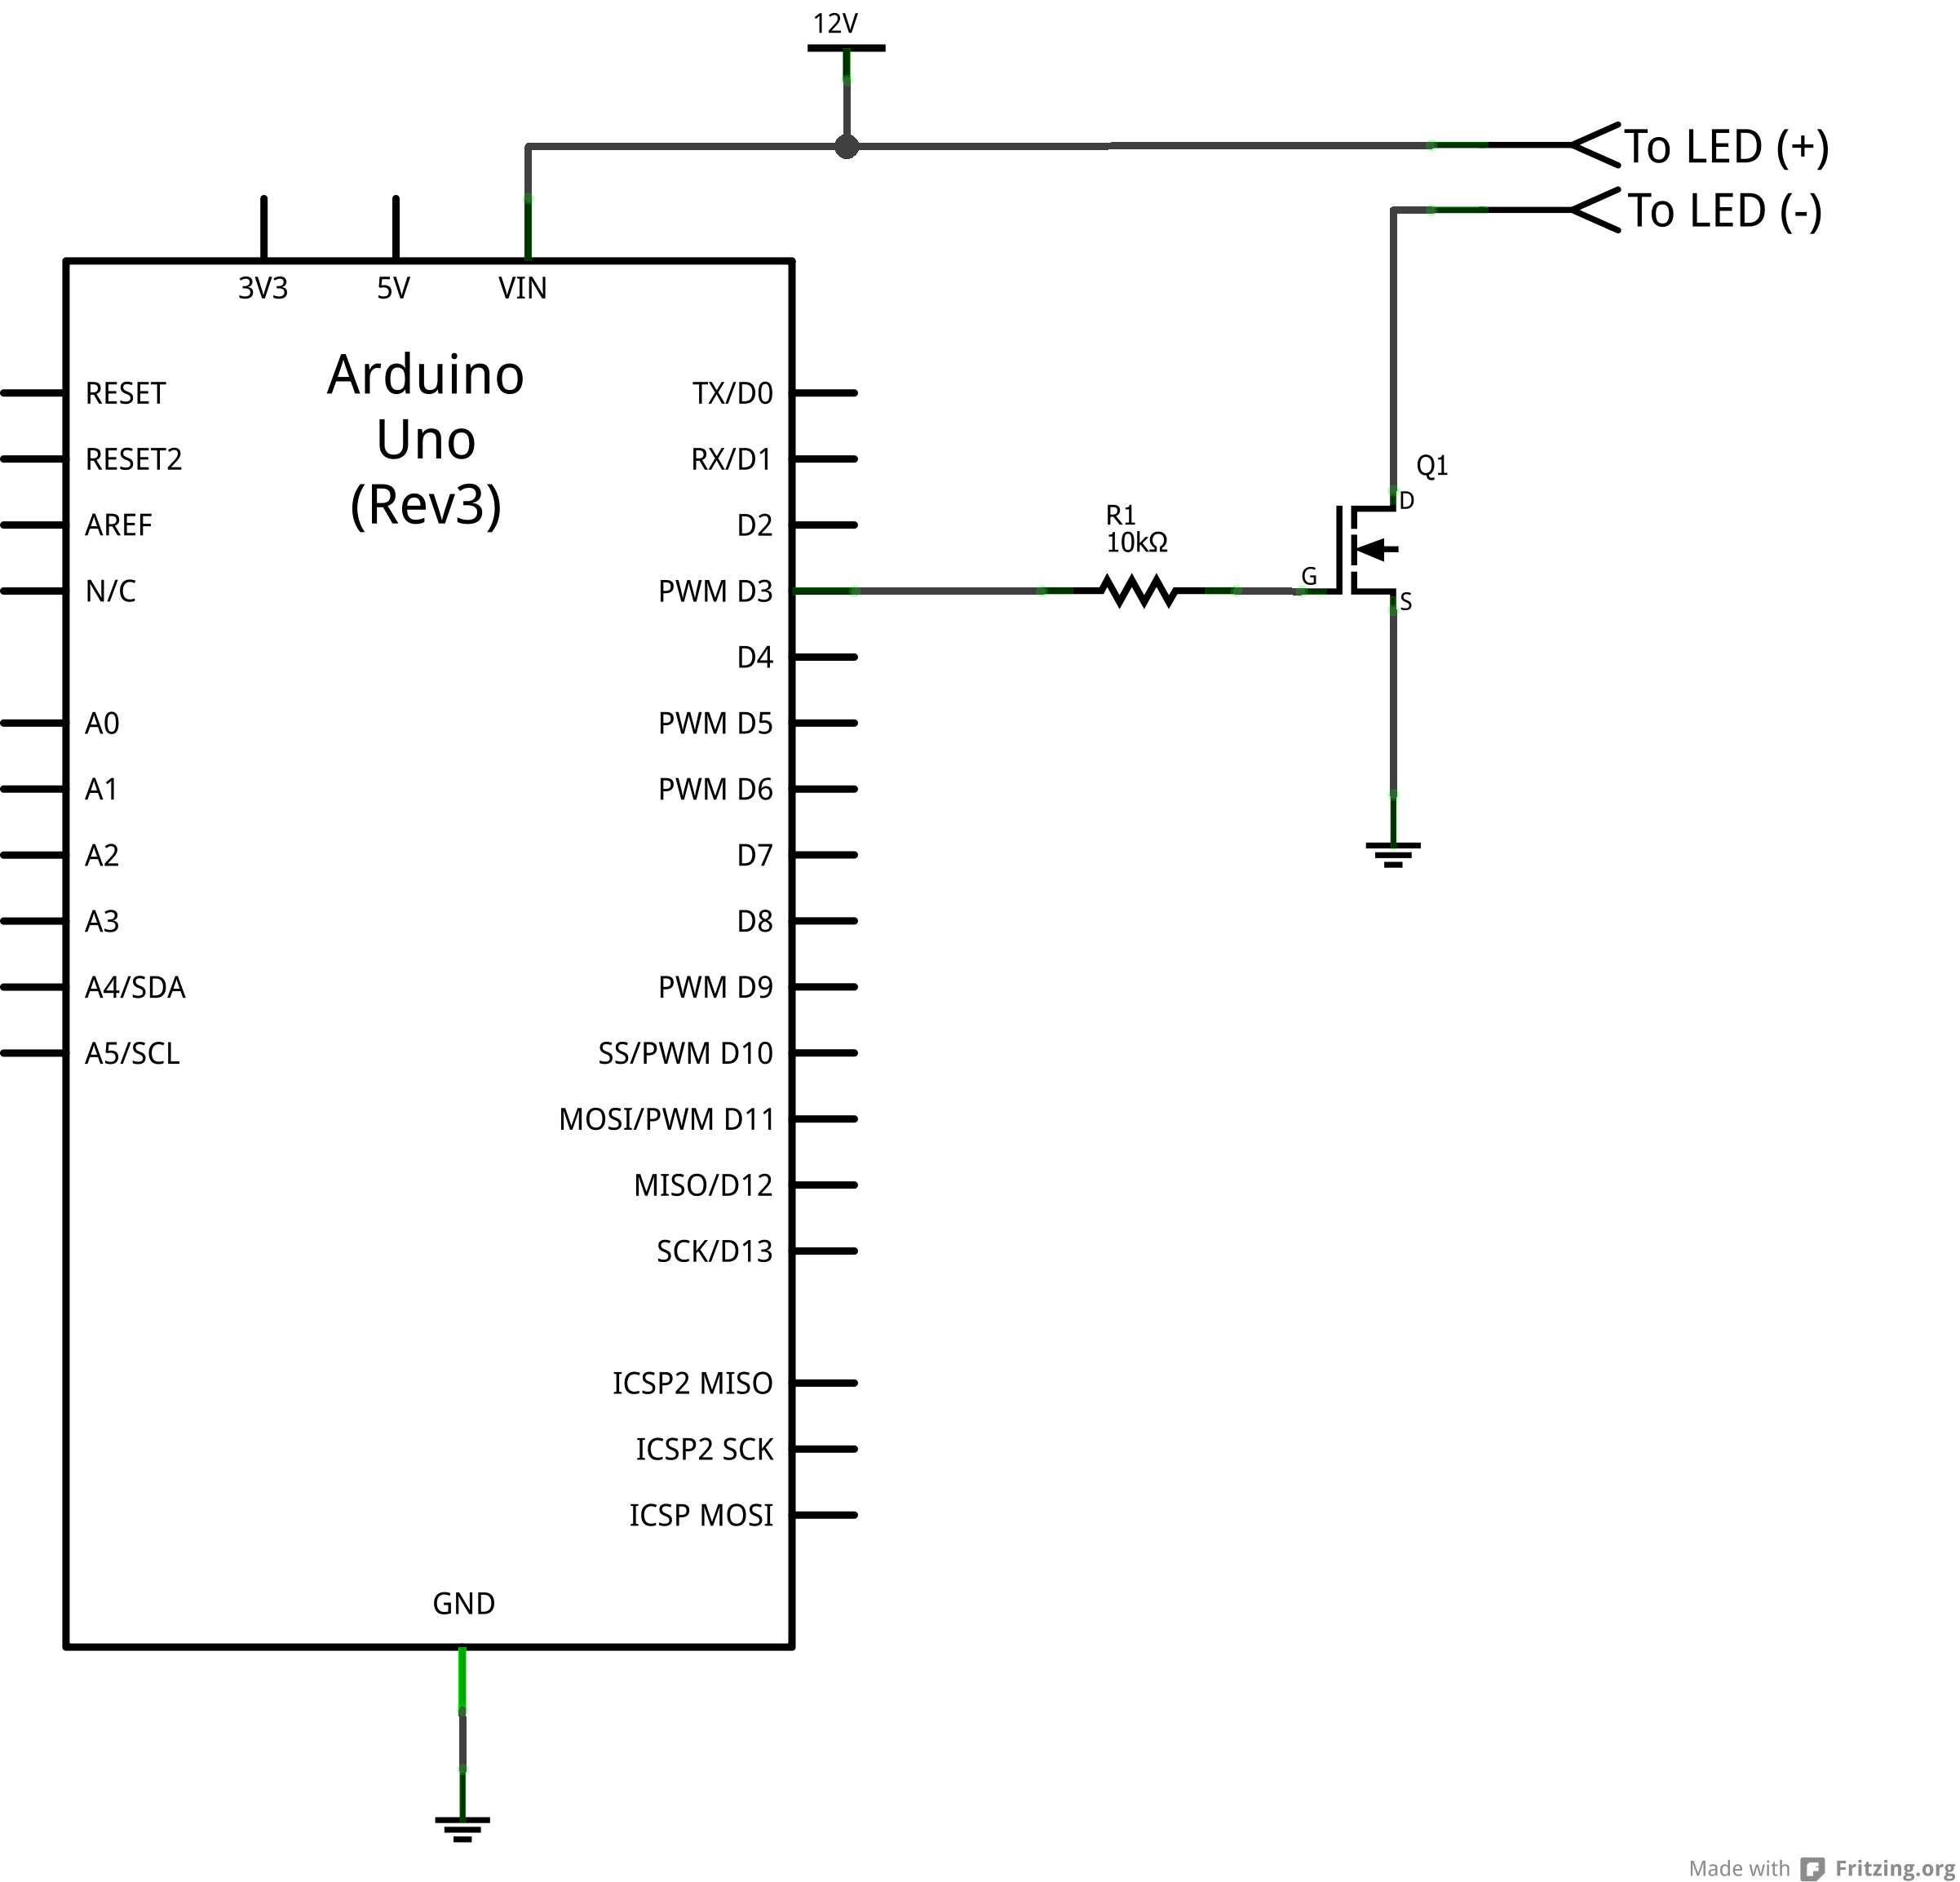 Parallel Wiring 12v Led Lights Circuit Diagram Library Strip Make Sure The Positive Wire